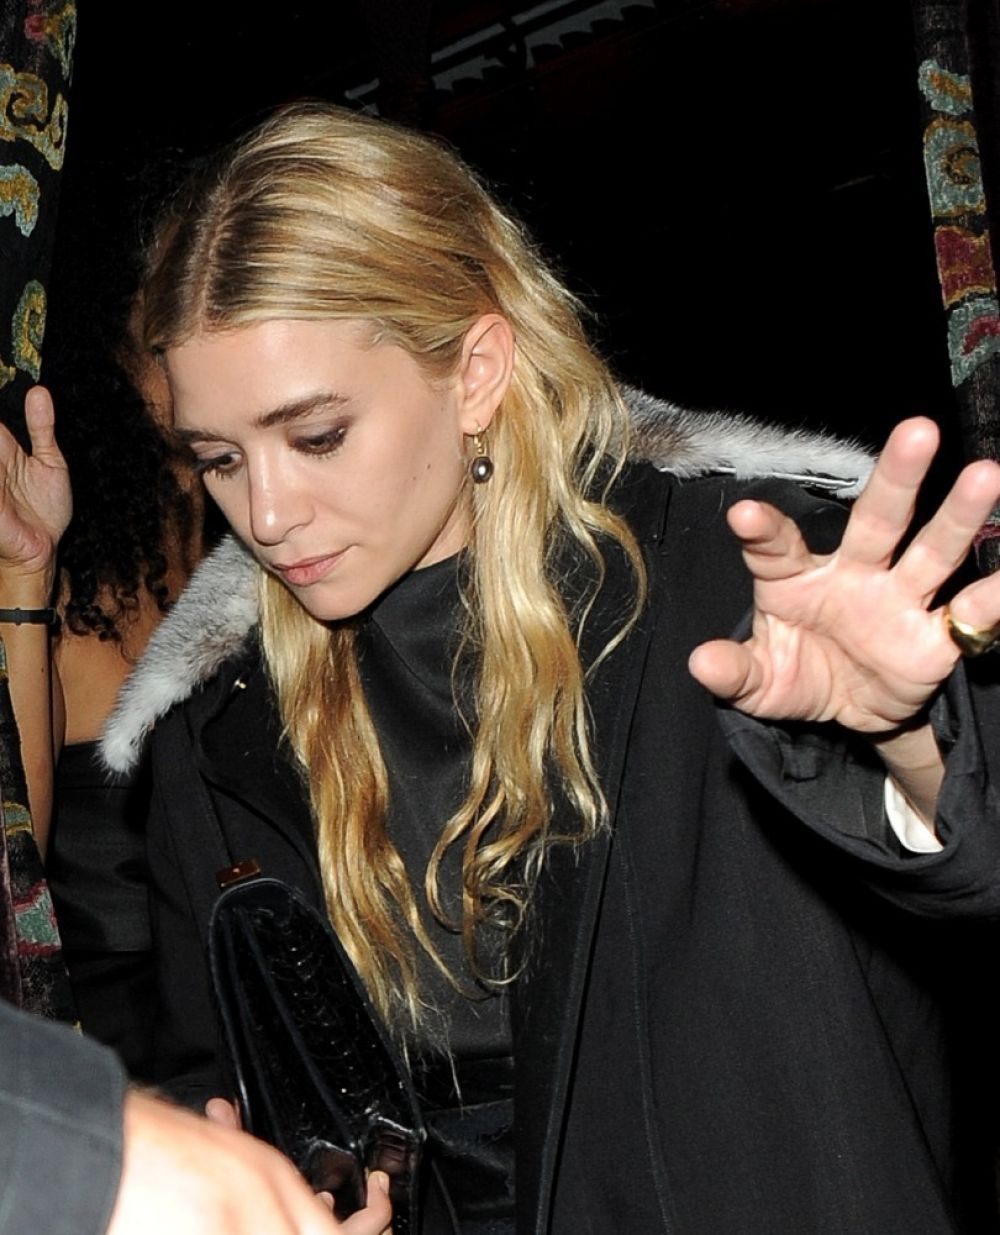 Mary Kate And Ashley Olsen Leave The Arts Club In London